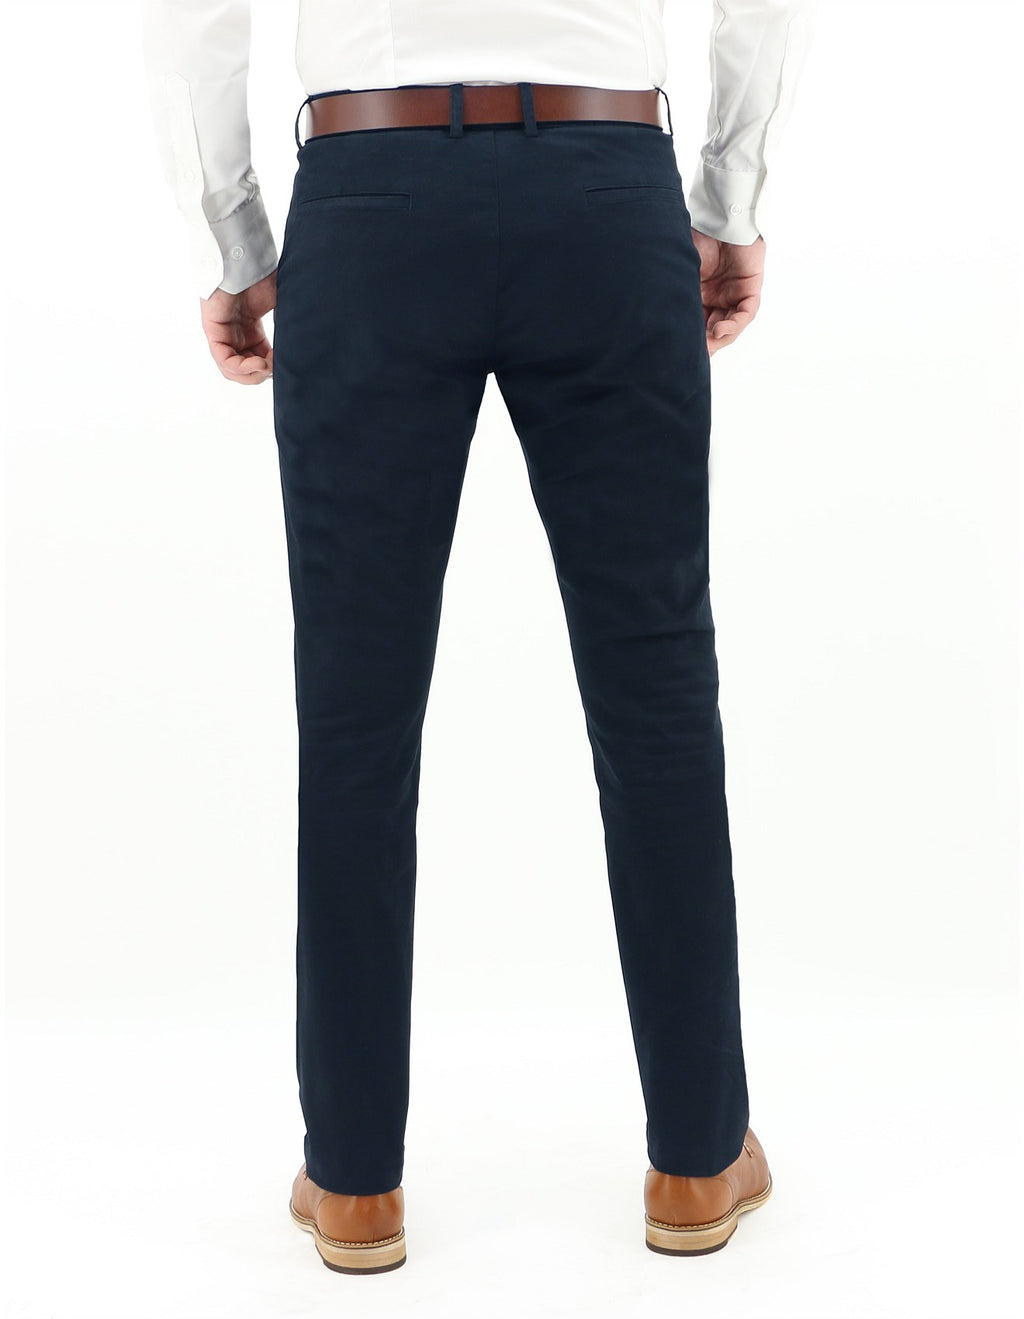 Daniel Hechter Navy Blue Chinos - Ignition For Men